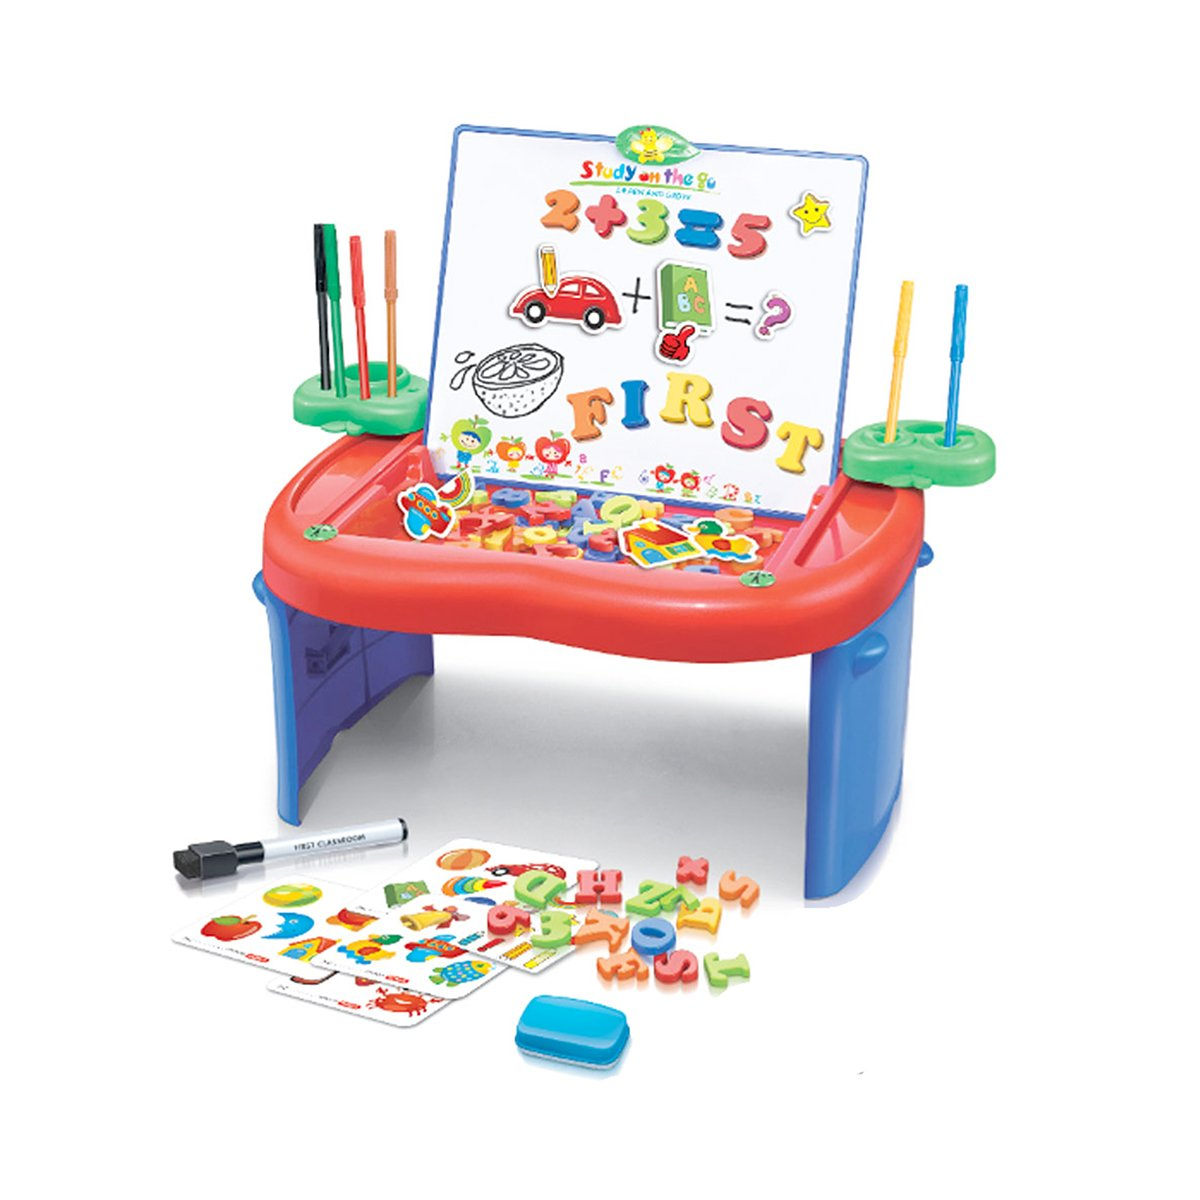 DaVinci Kids Portable Apple Desk with Magnetic Letters and Dry-Erase Markers